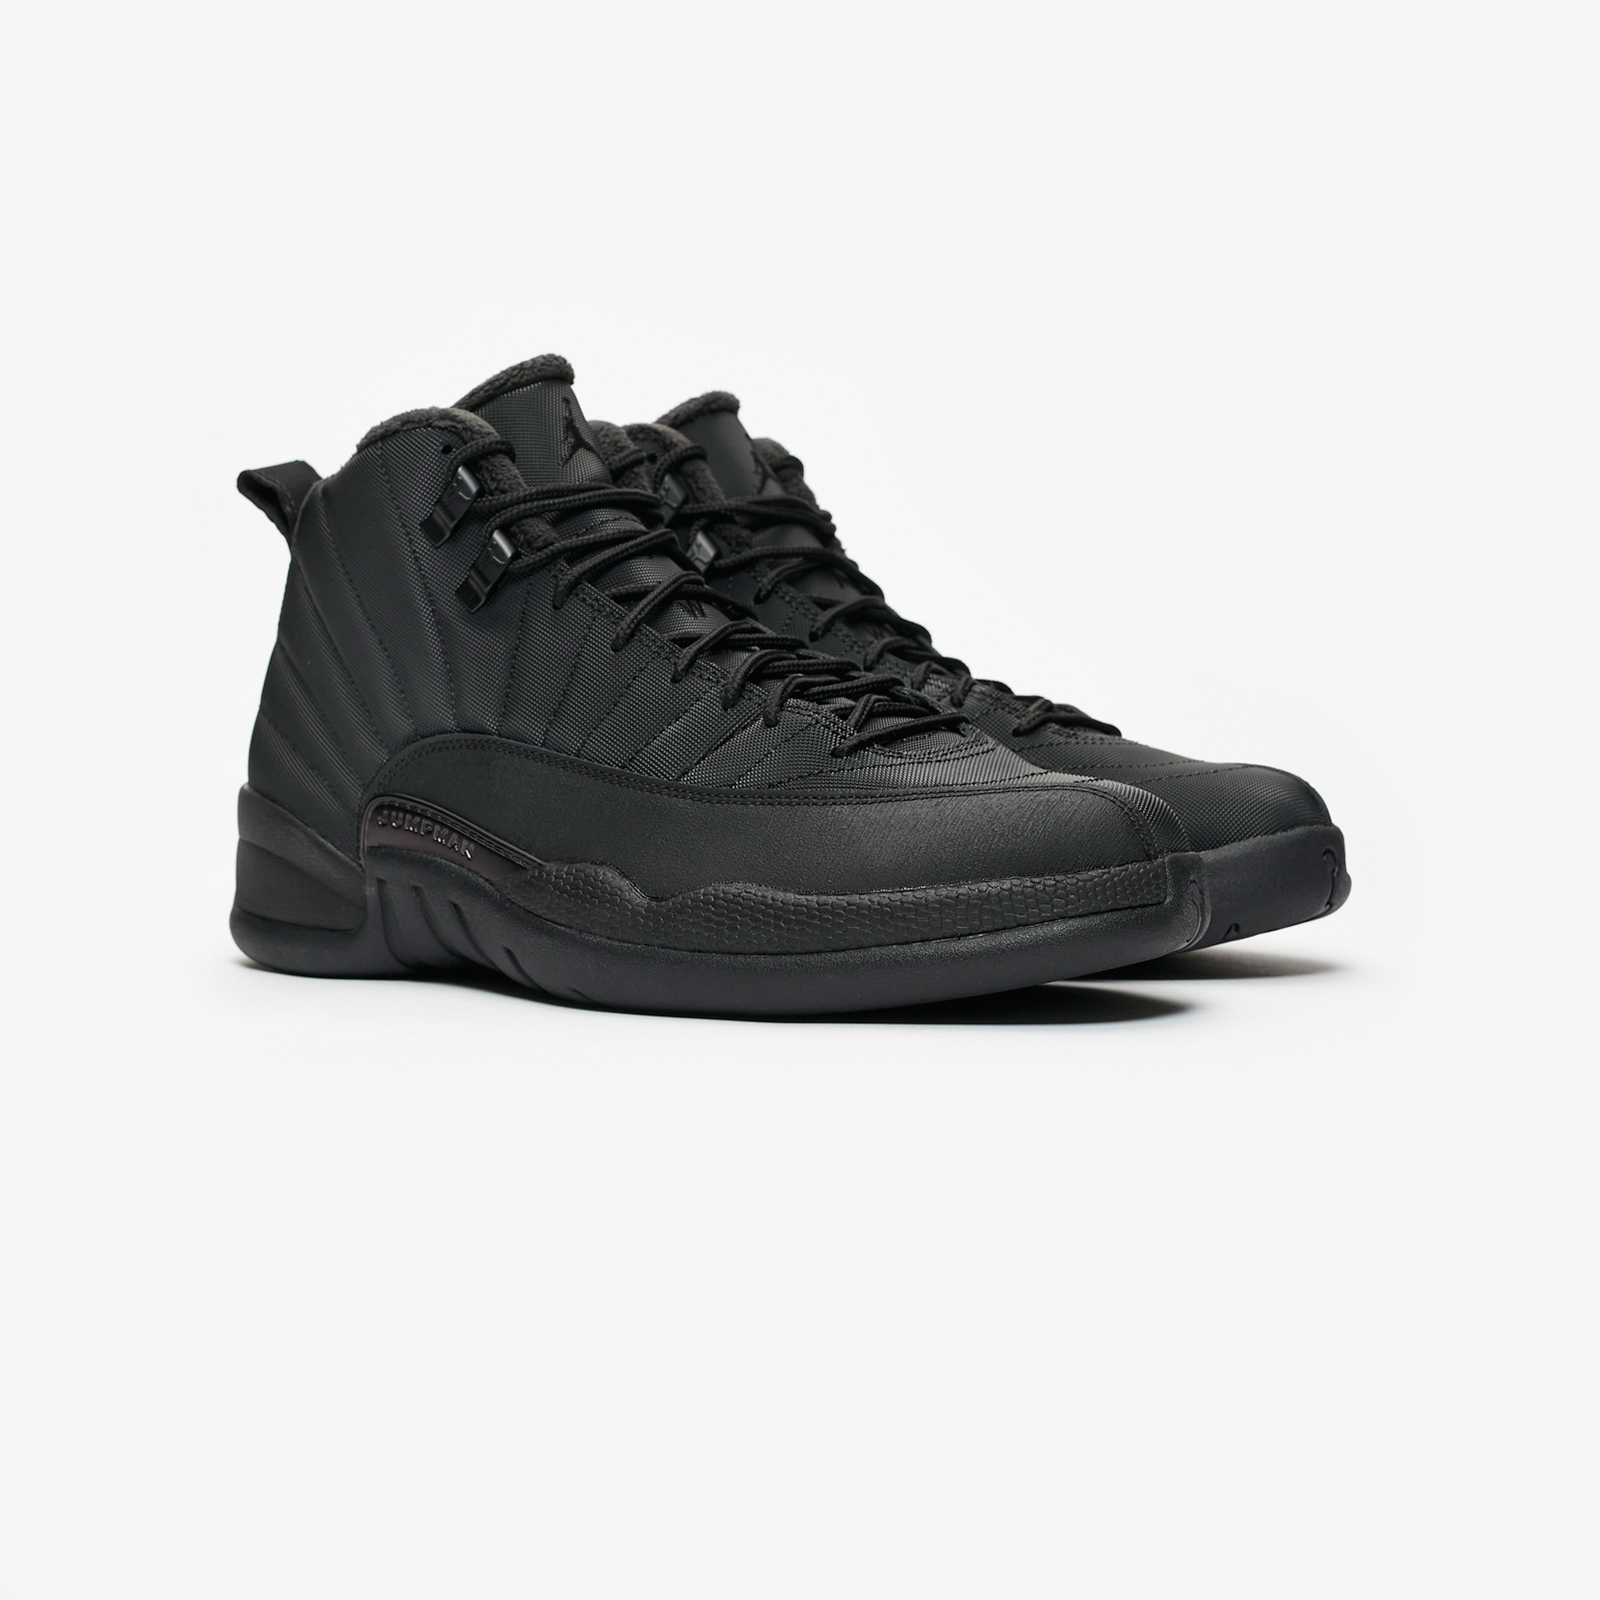 e31c71f1c709d6 Jordan Brand Air Jordan 12 Retro Winter - Bq6851-001 ...